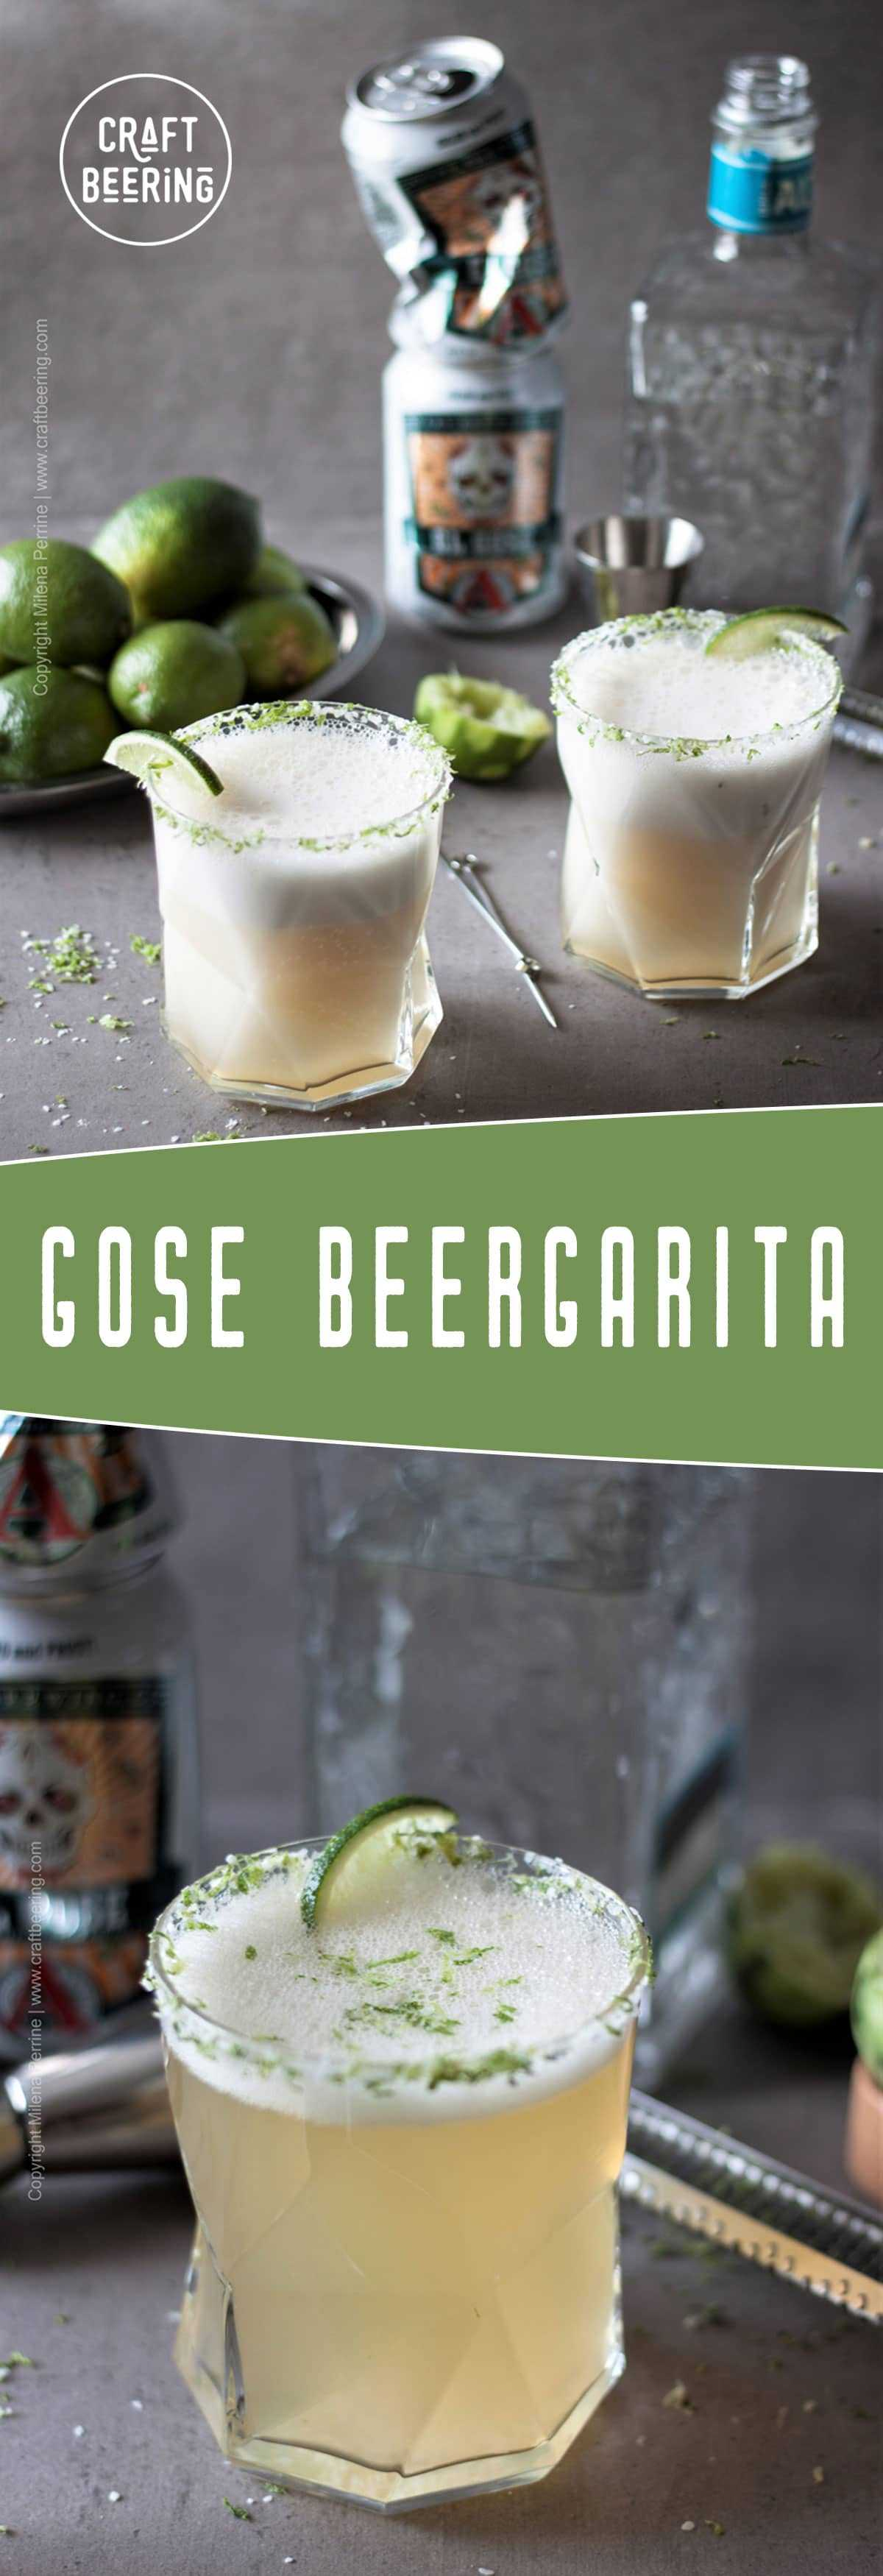 Gose margarita or if you'd rather beergarita is a sprightly beer cocktail with sour gose style ale and tequila. #beercocktail #beermargarita #beergarita #gosemargarita #gose #tequilacocktail